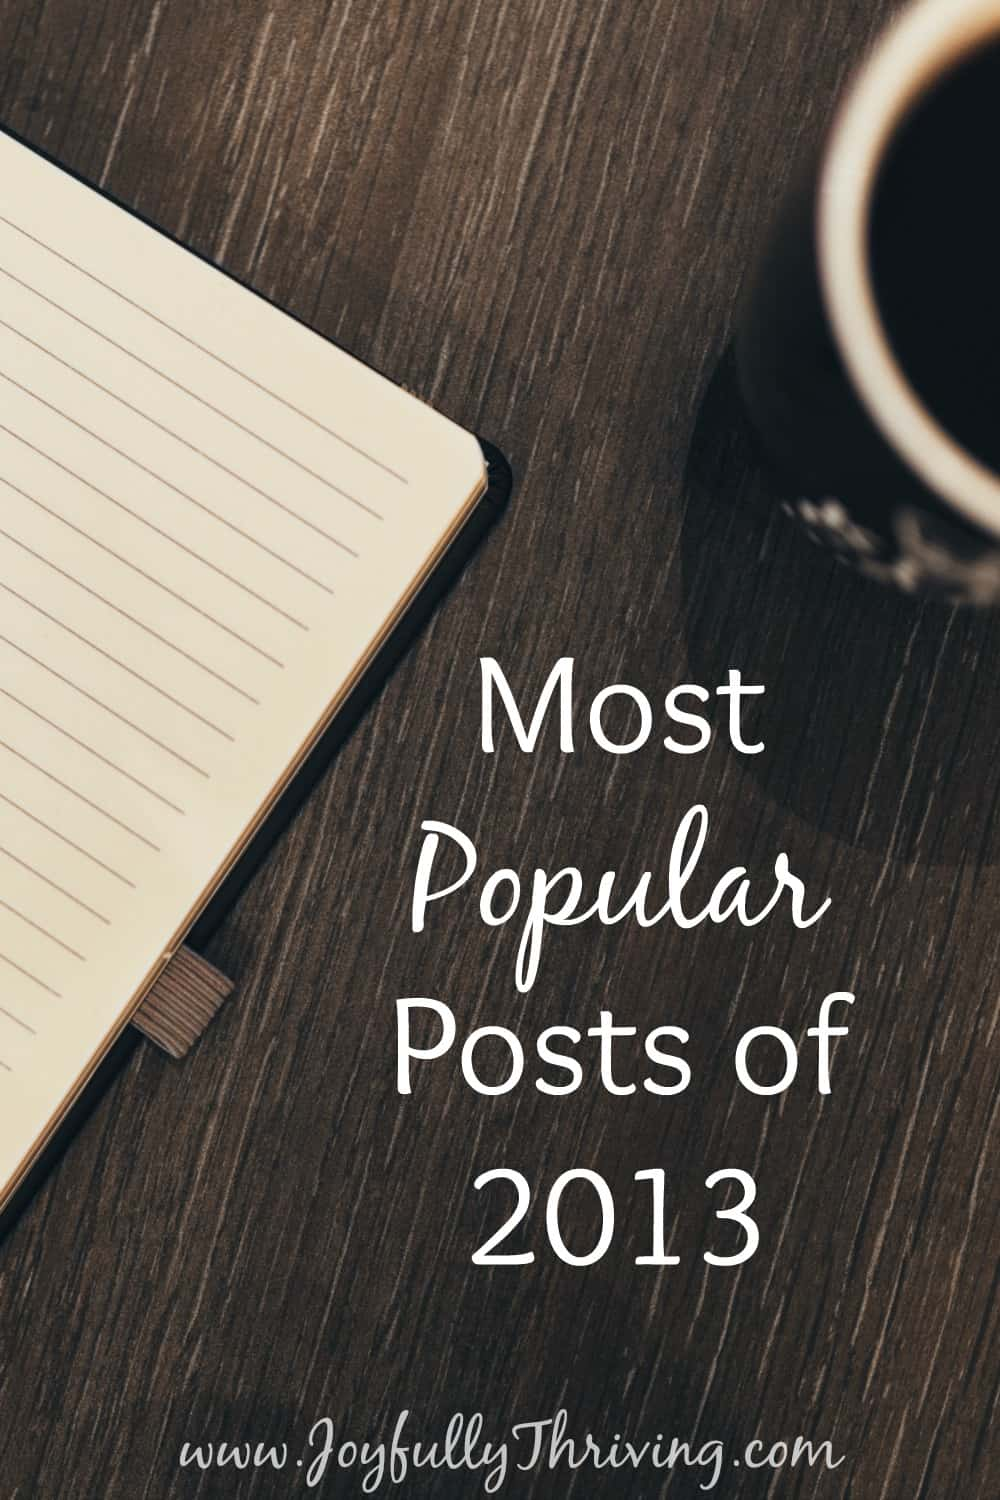 Top 10 Posts from Joyfully Thriving in 2013